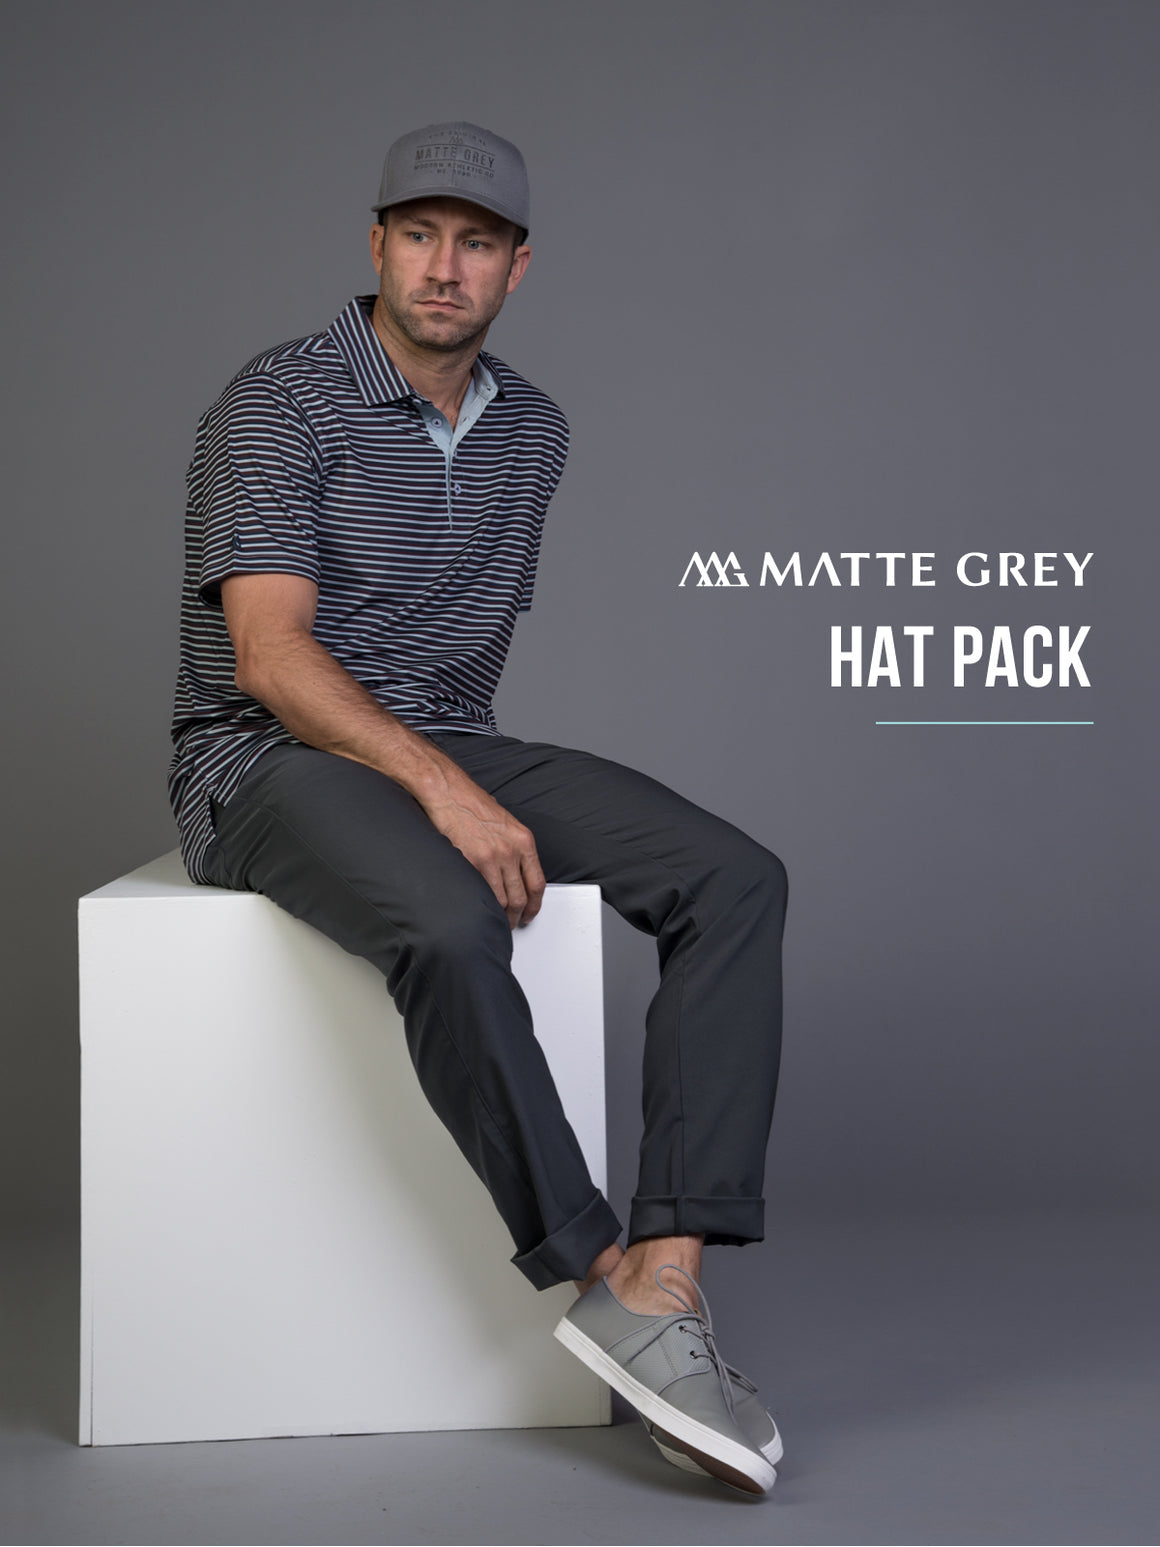 Matte Grey Hat Sample Pack Flash Sale